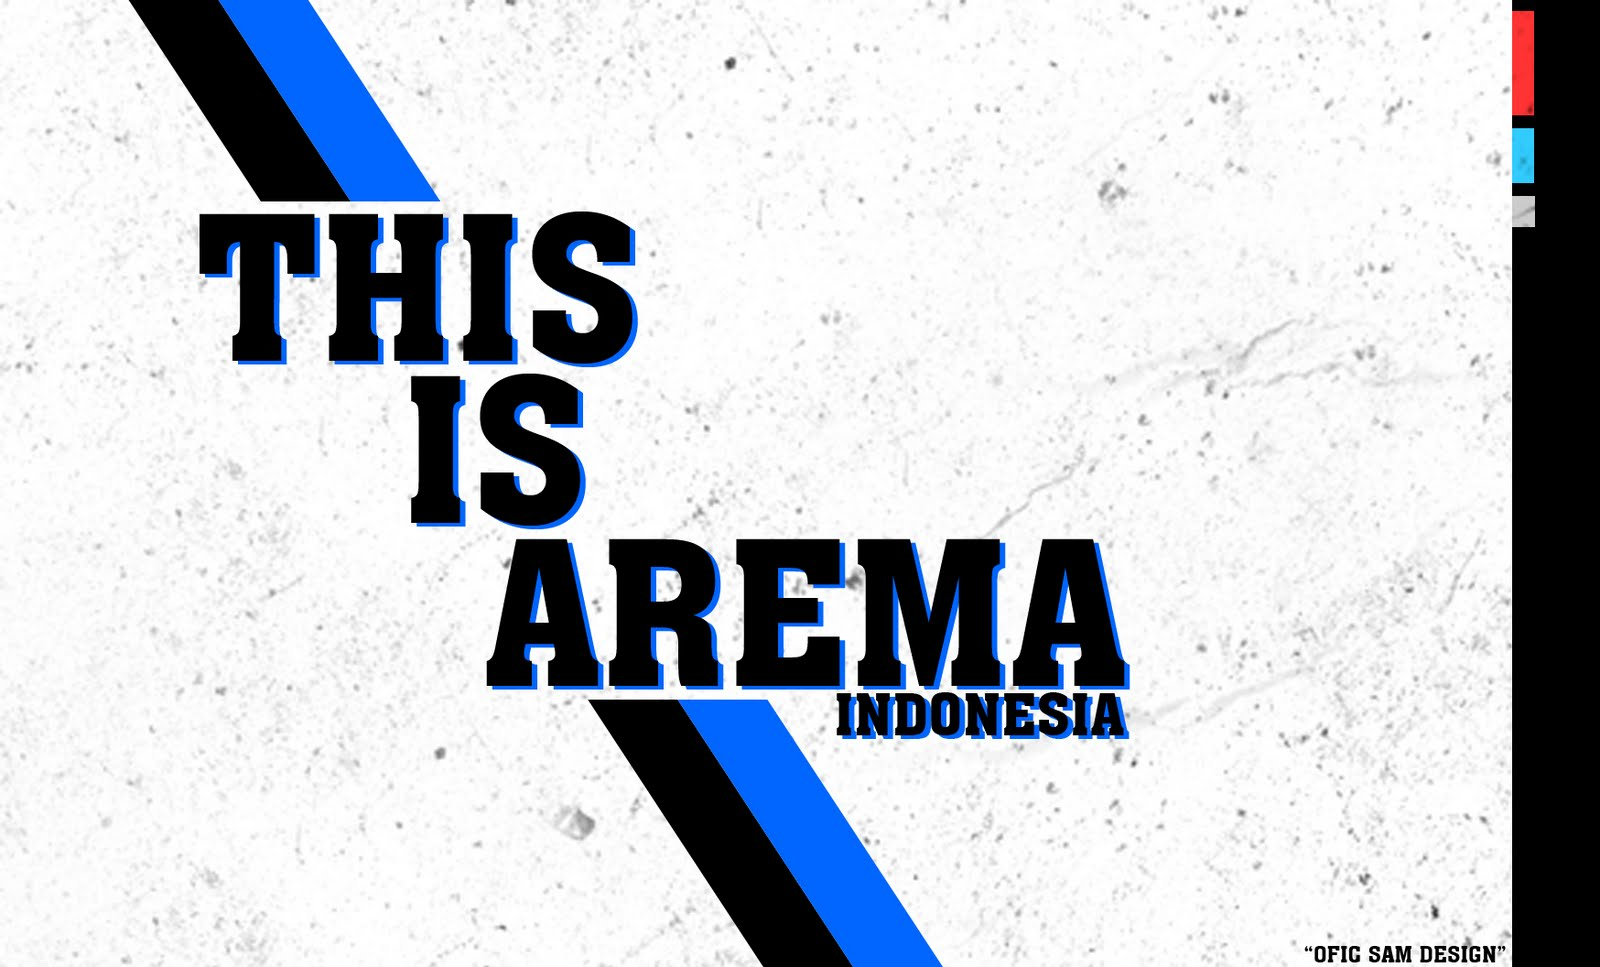 http://2.bp.blogspot.com/-oKT20b0v8F8/TglrQu3pVvI/AAAAAAAAAU8/7PmNgriMOQo/s1600/wallpaper+arema+indonesia+2011+by+%2528ofic+sam%2529+fb..+boy_gassipers%2540yahoo.co.id+8.jpg